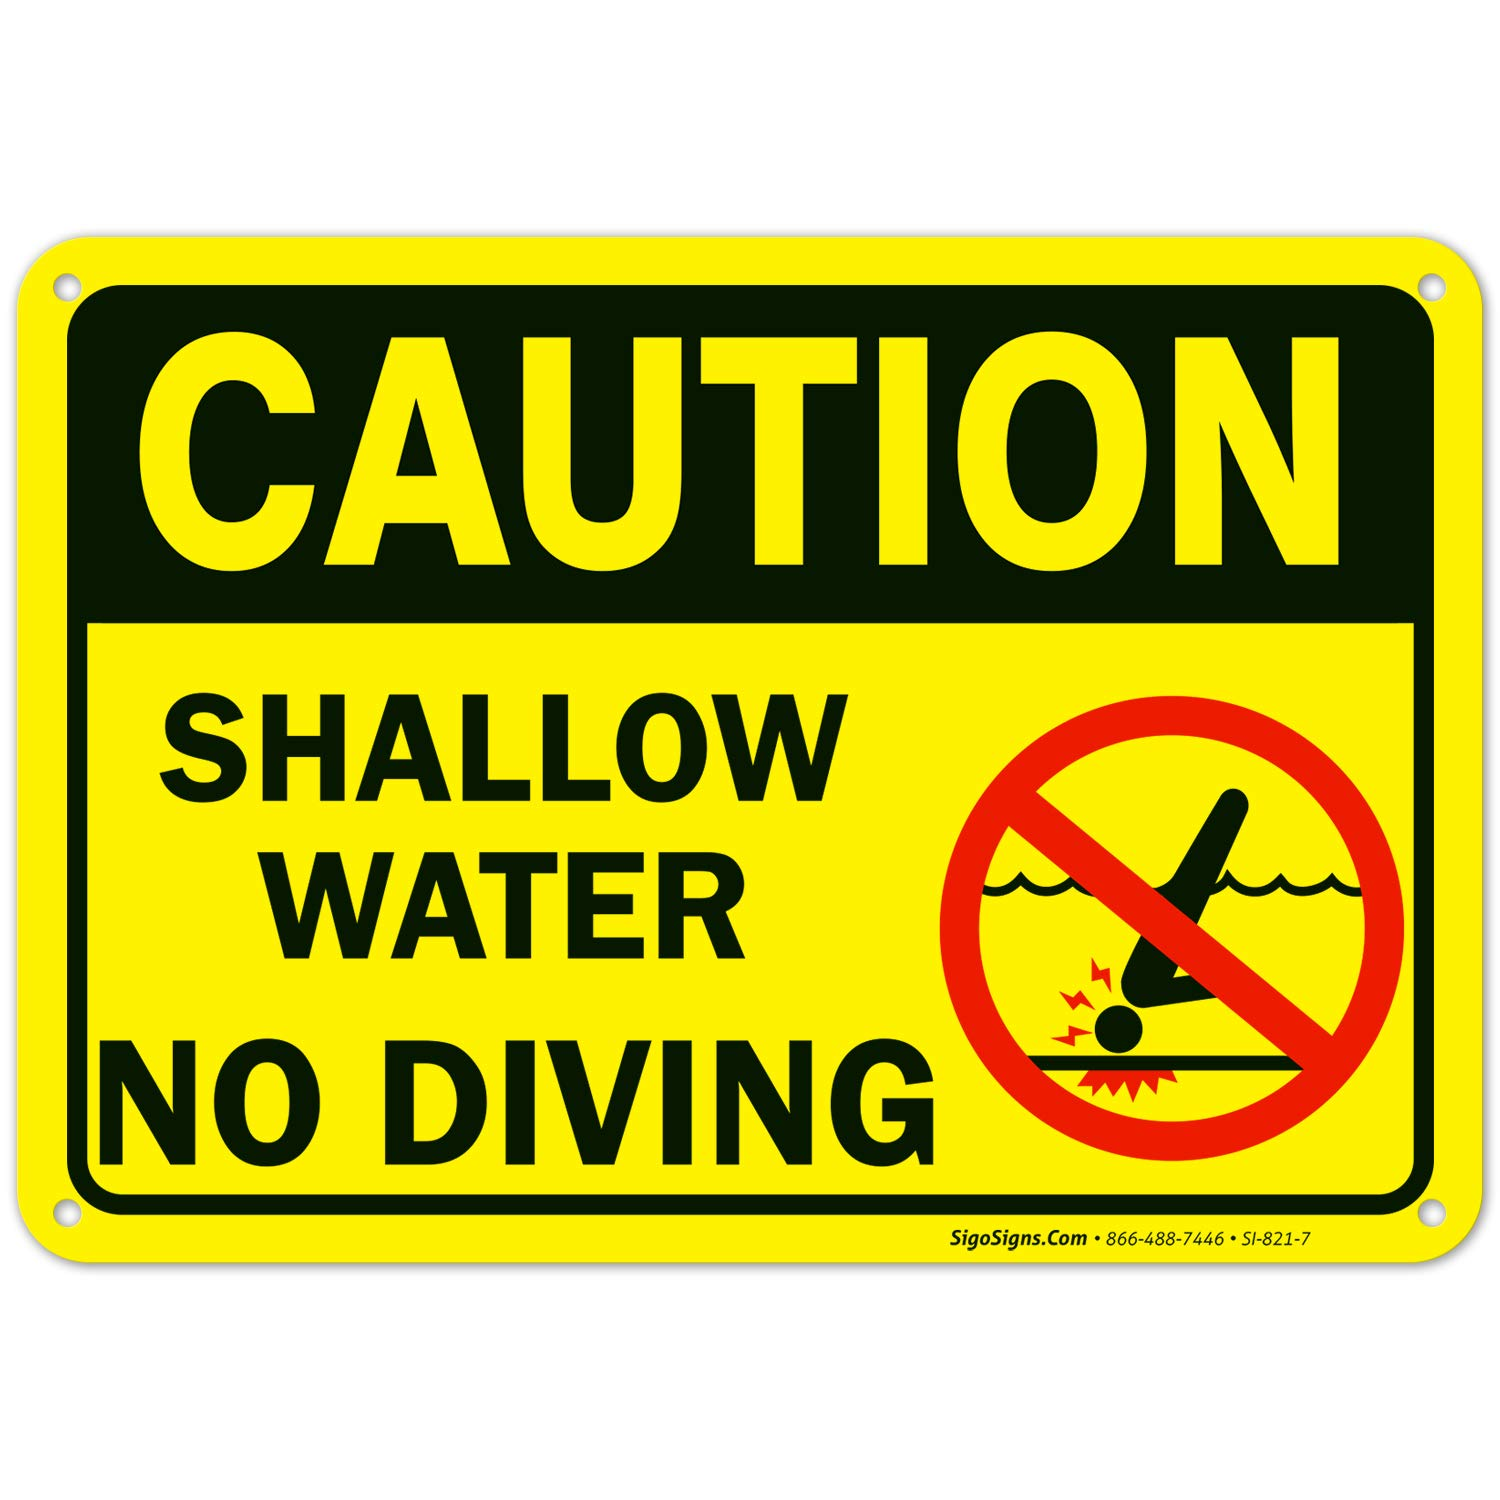 Swimming Pool Sign Shallow Water No Diving, 10x7 Rust Free Aluminum, Weather/Fade Resistant, Easy Mounting, Indoor/Outdoor Use, Made in USA by SIGO SIGNS